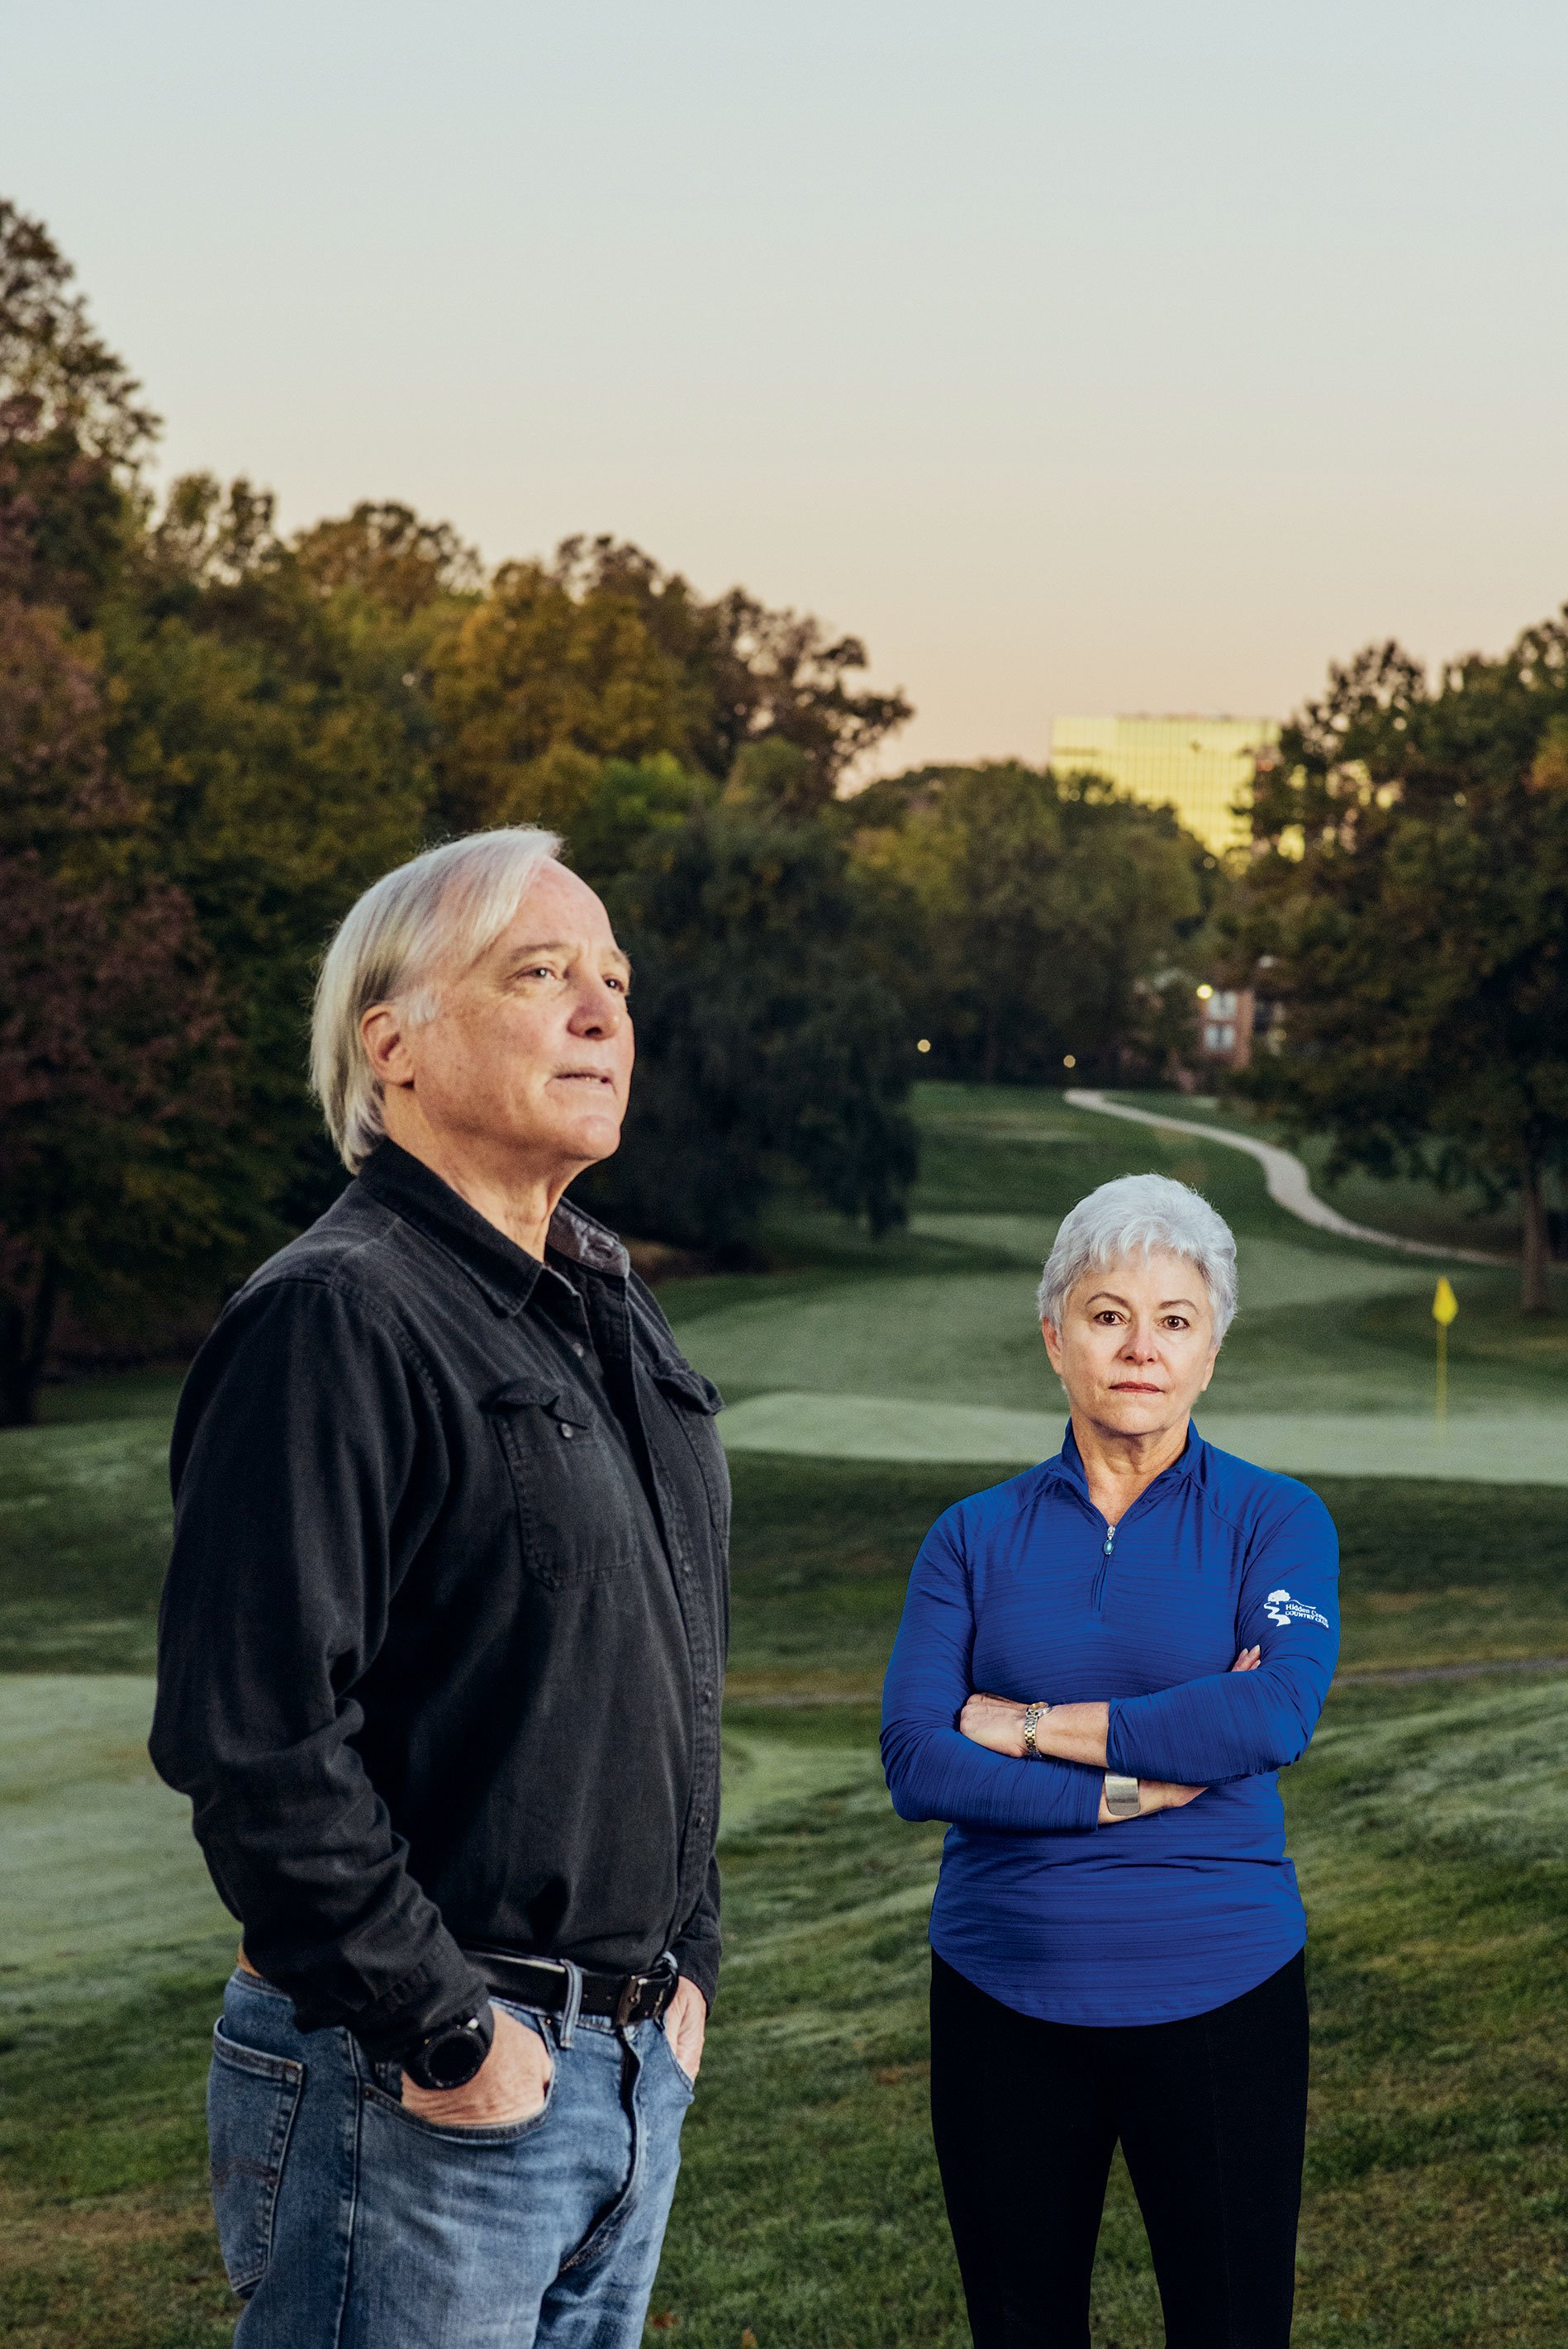 Dennis Hays and Lynne Mulston want golf courses saved—it's green space for all, they say. Photograph by Stephen Voss.